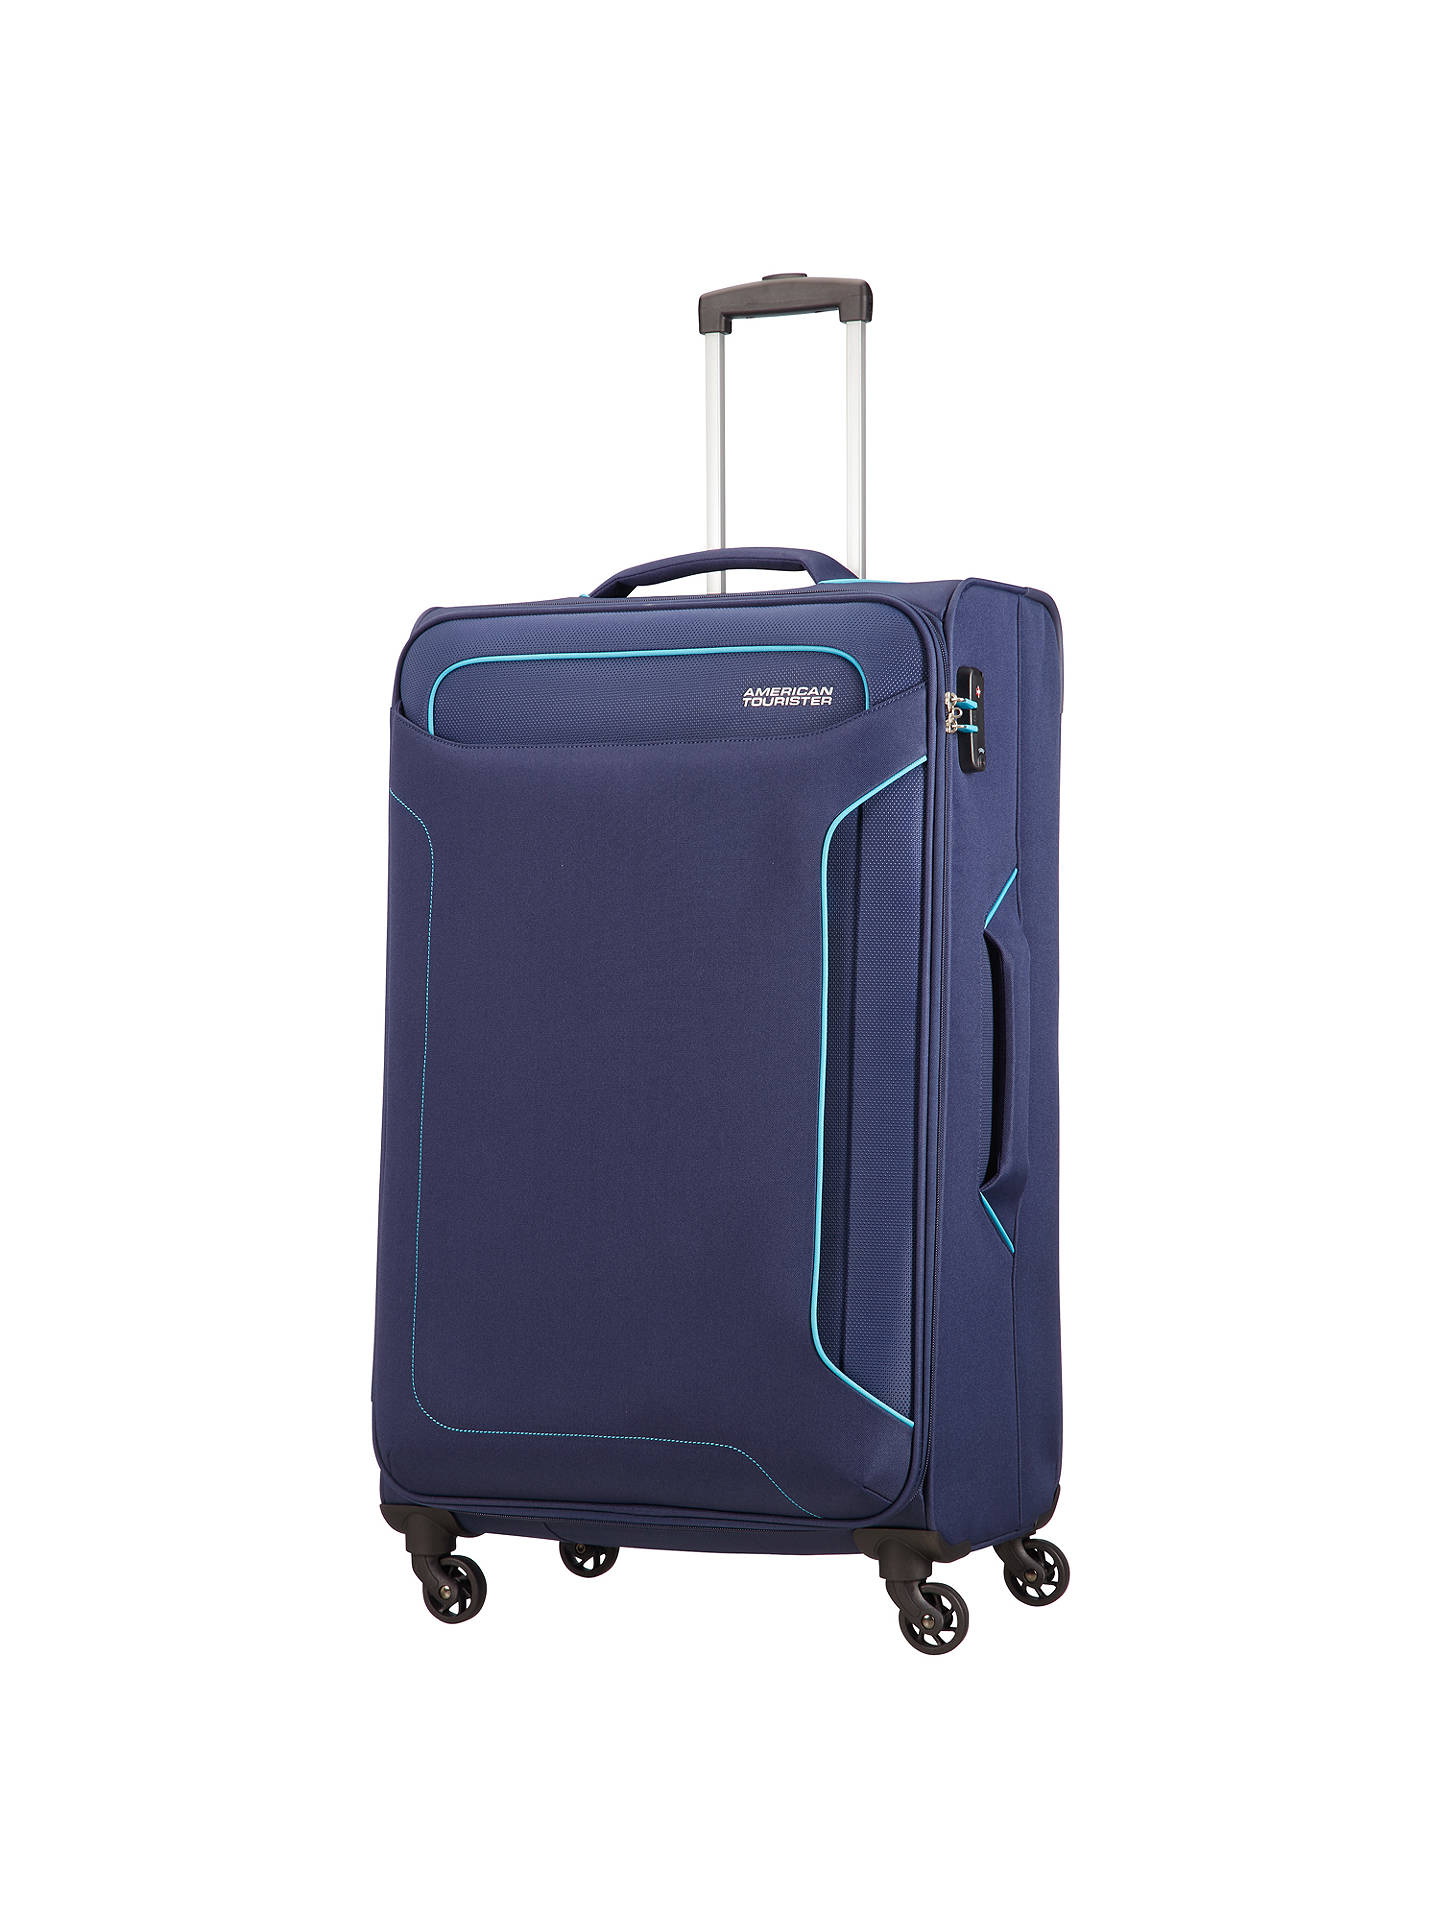 99d53e511b90 American Tourister Holiday Heat 4-Spinner 79cm Large Suitcase, Navy